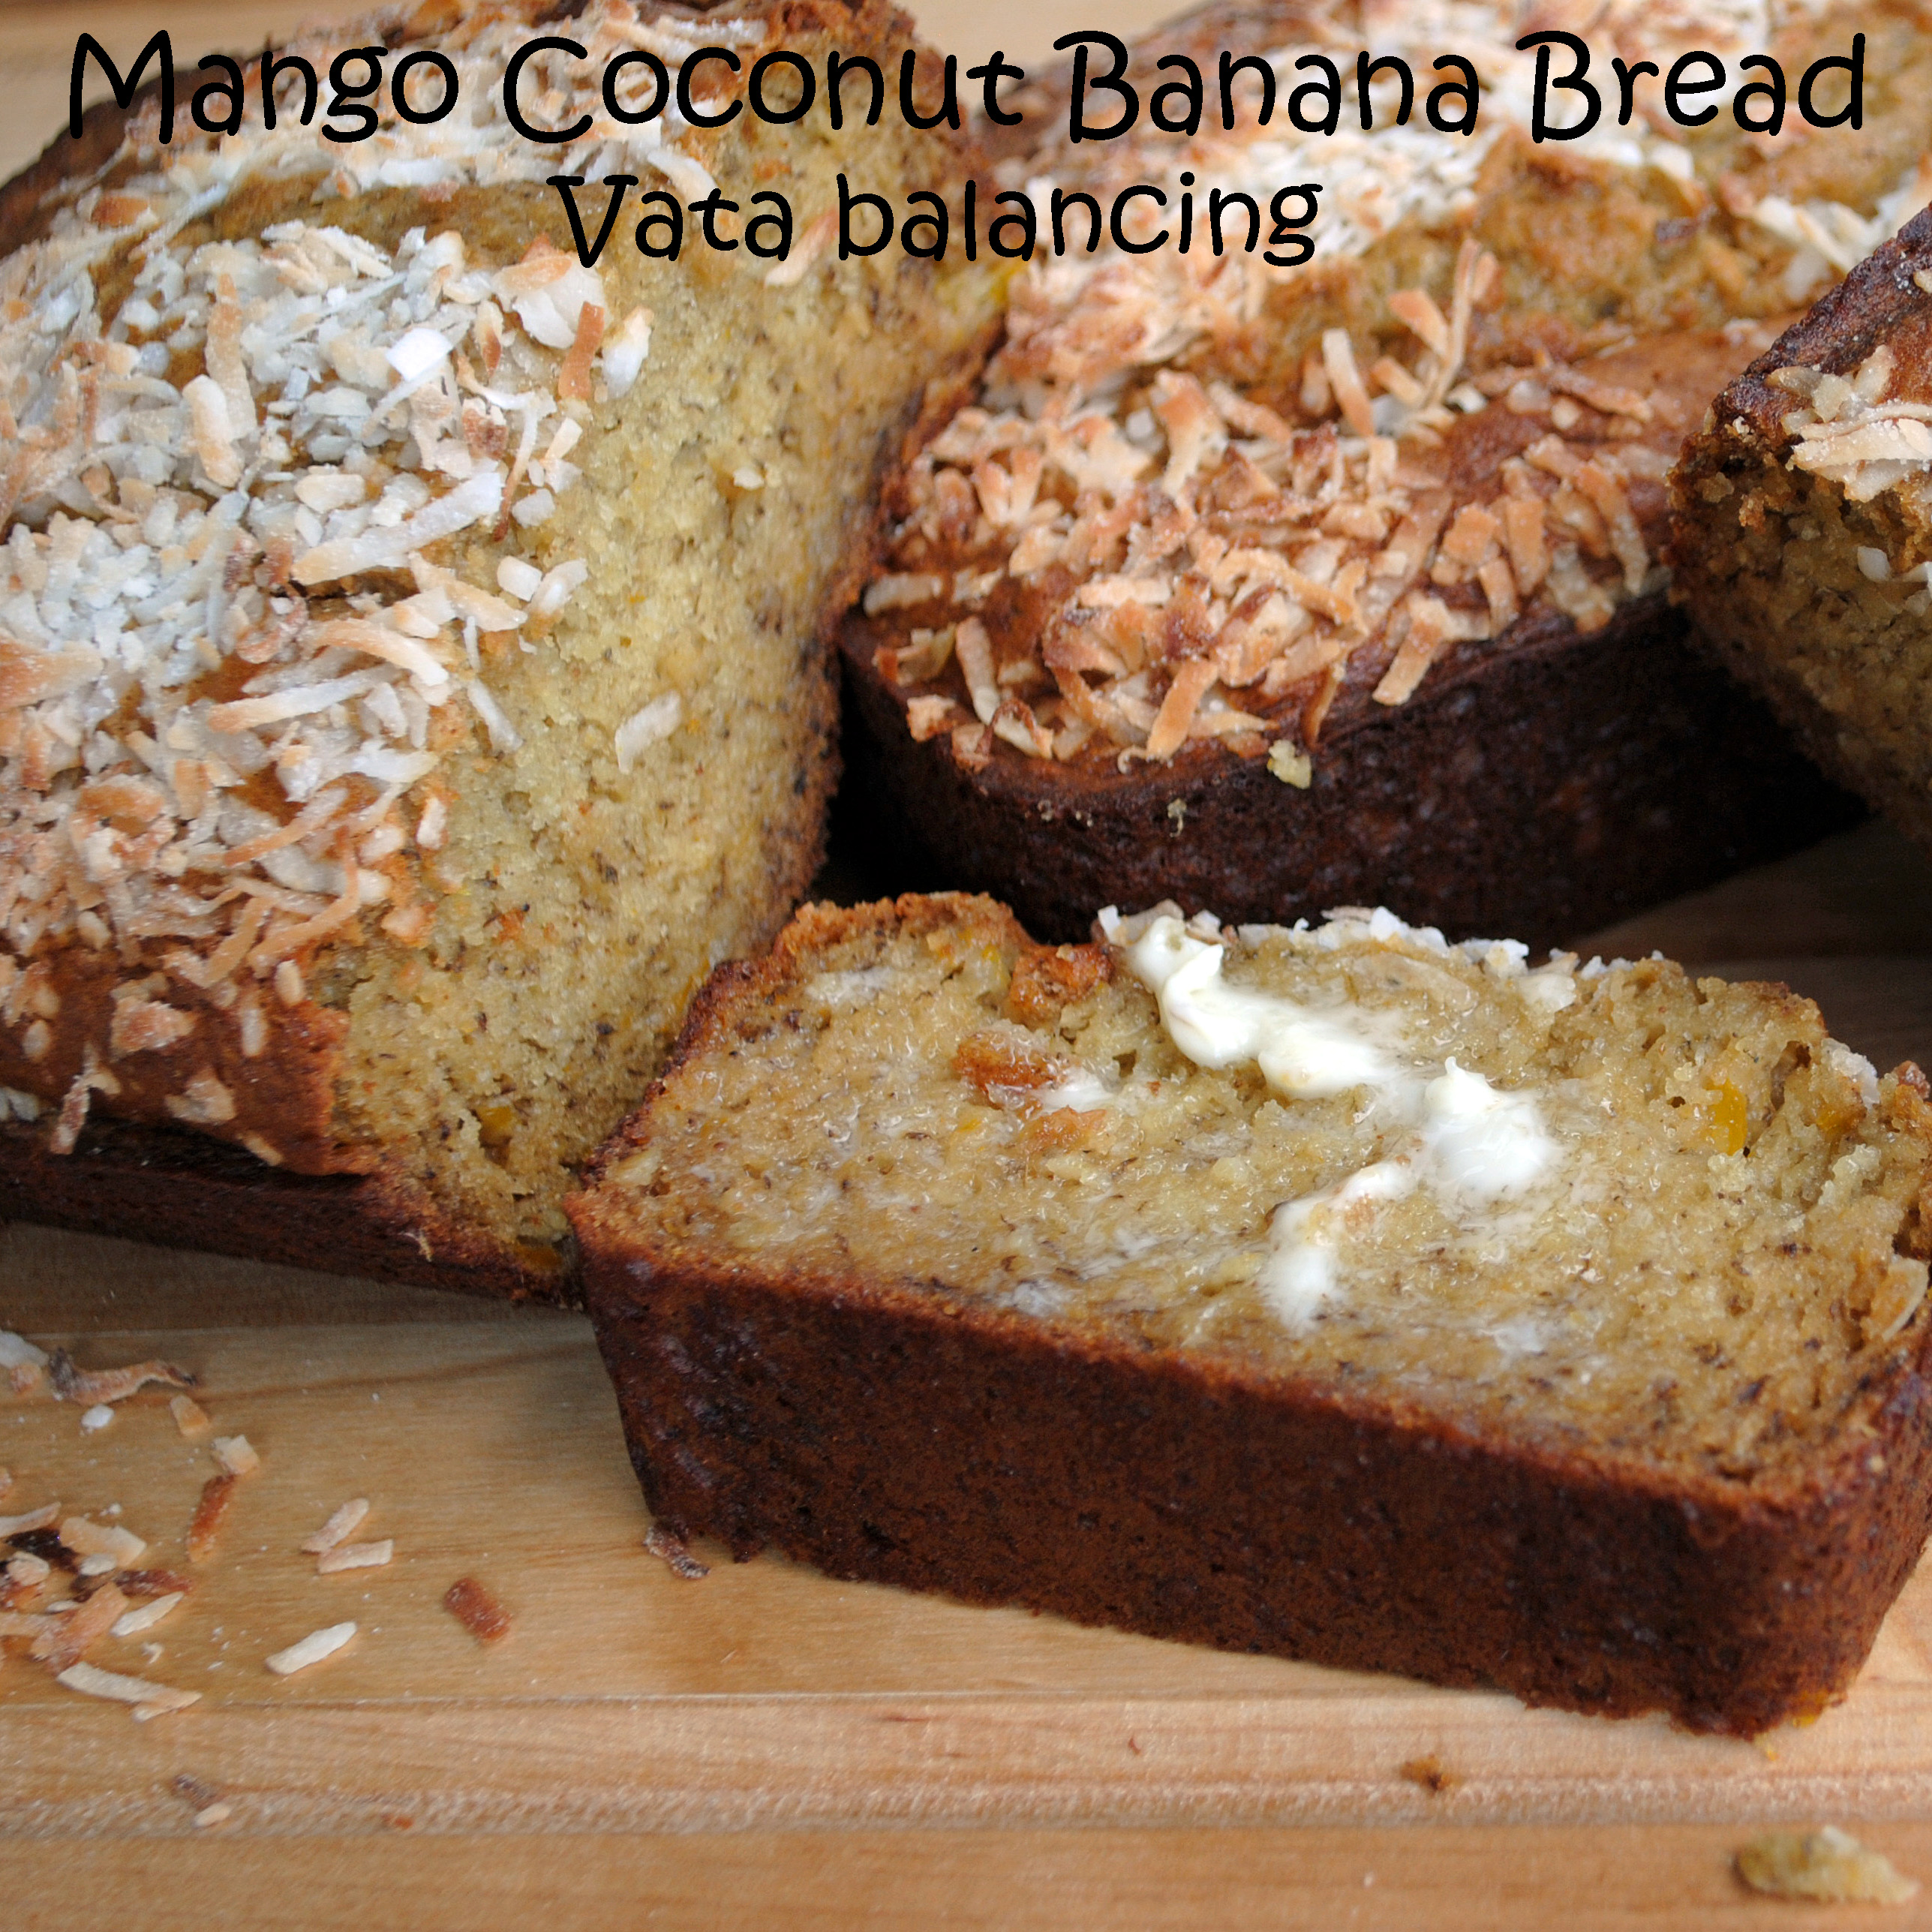 Mango Coconut Banana Bread